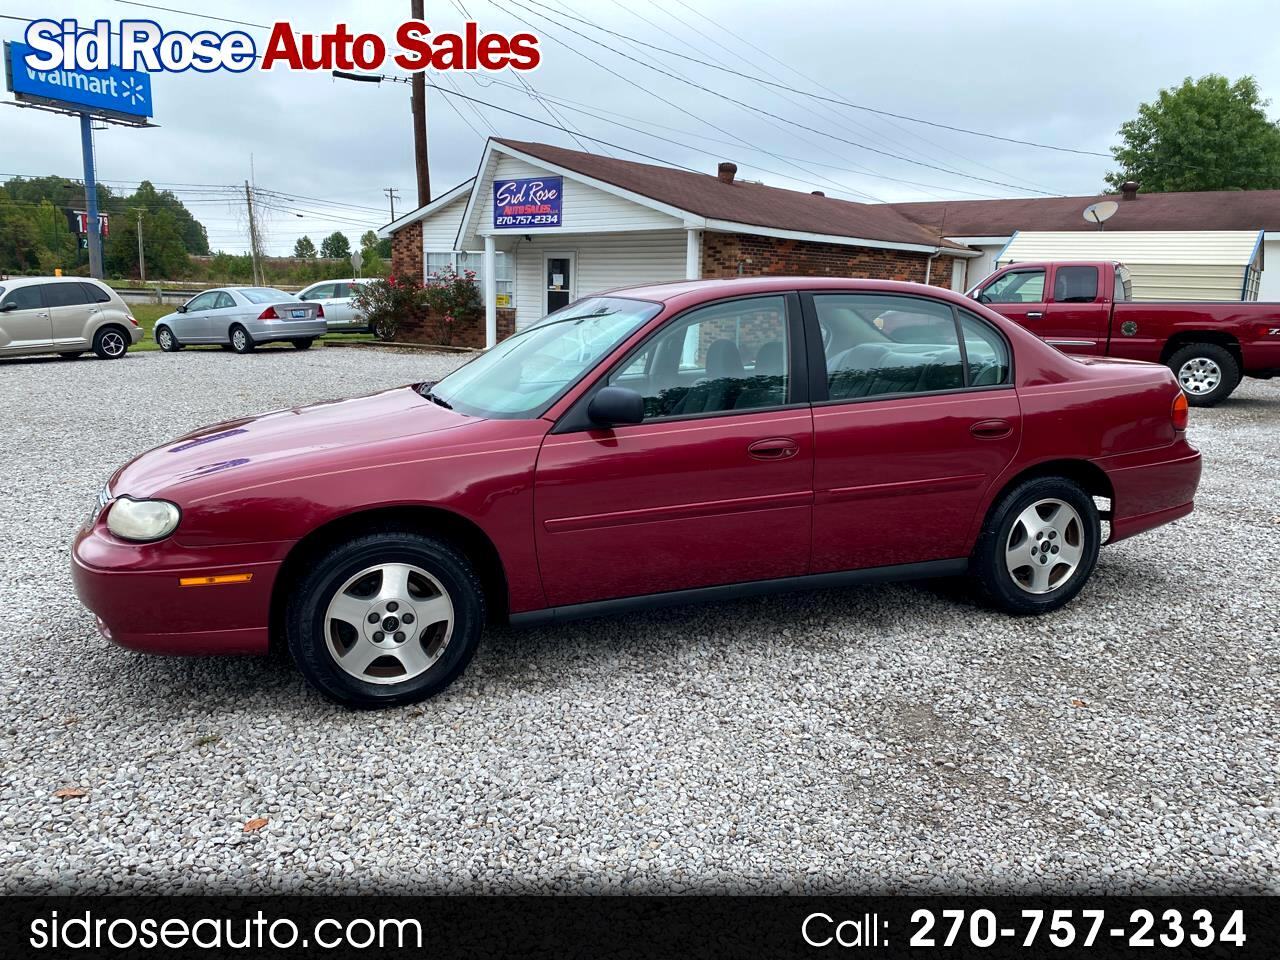 used cars for sale central city ky 42330 sid rose auto sales central city ky 42330 sid rose auto sales